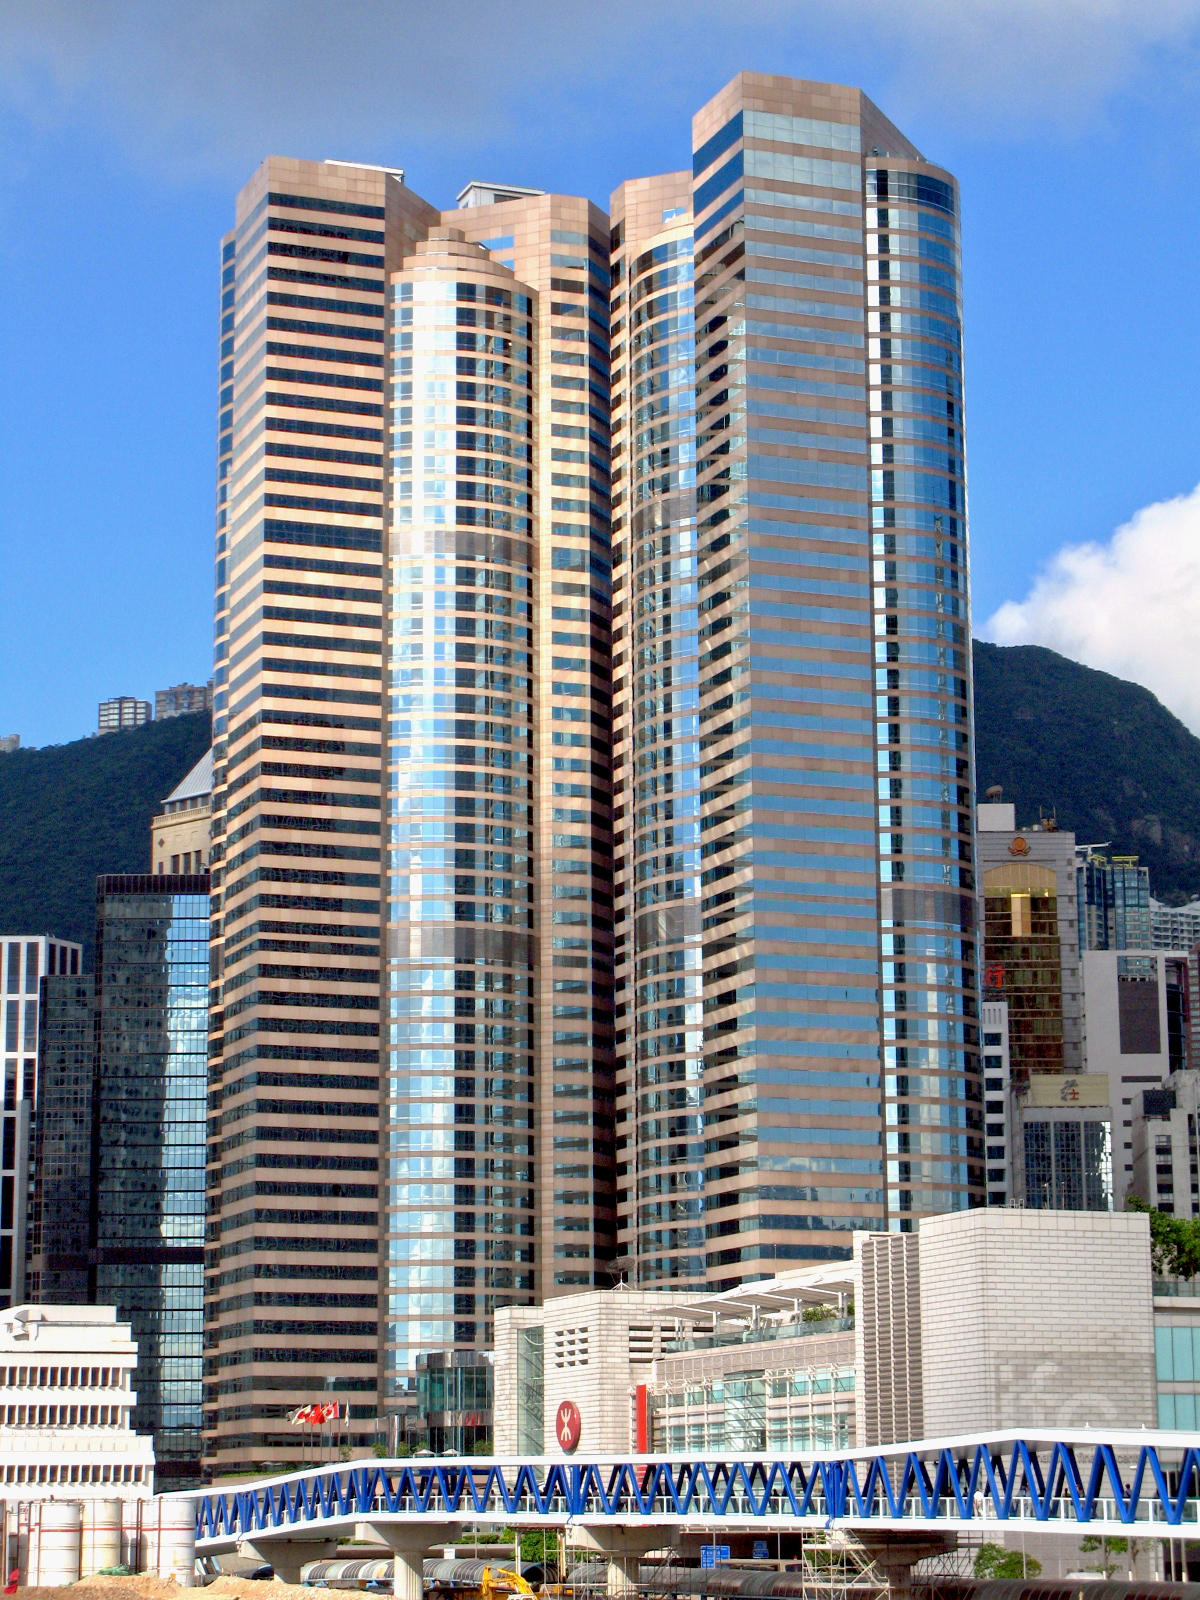 Consulate General Of Canada In Hong Kong And Macao Wikipedia